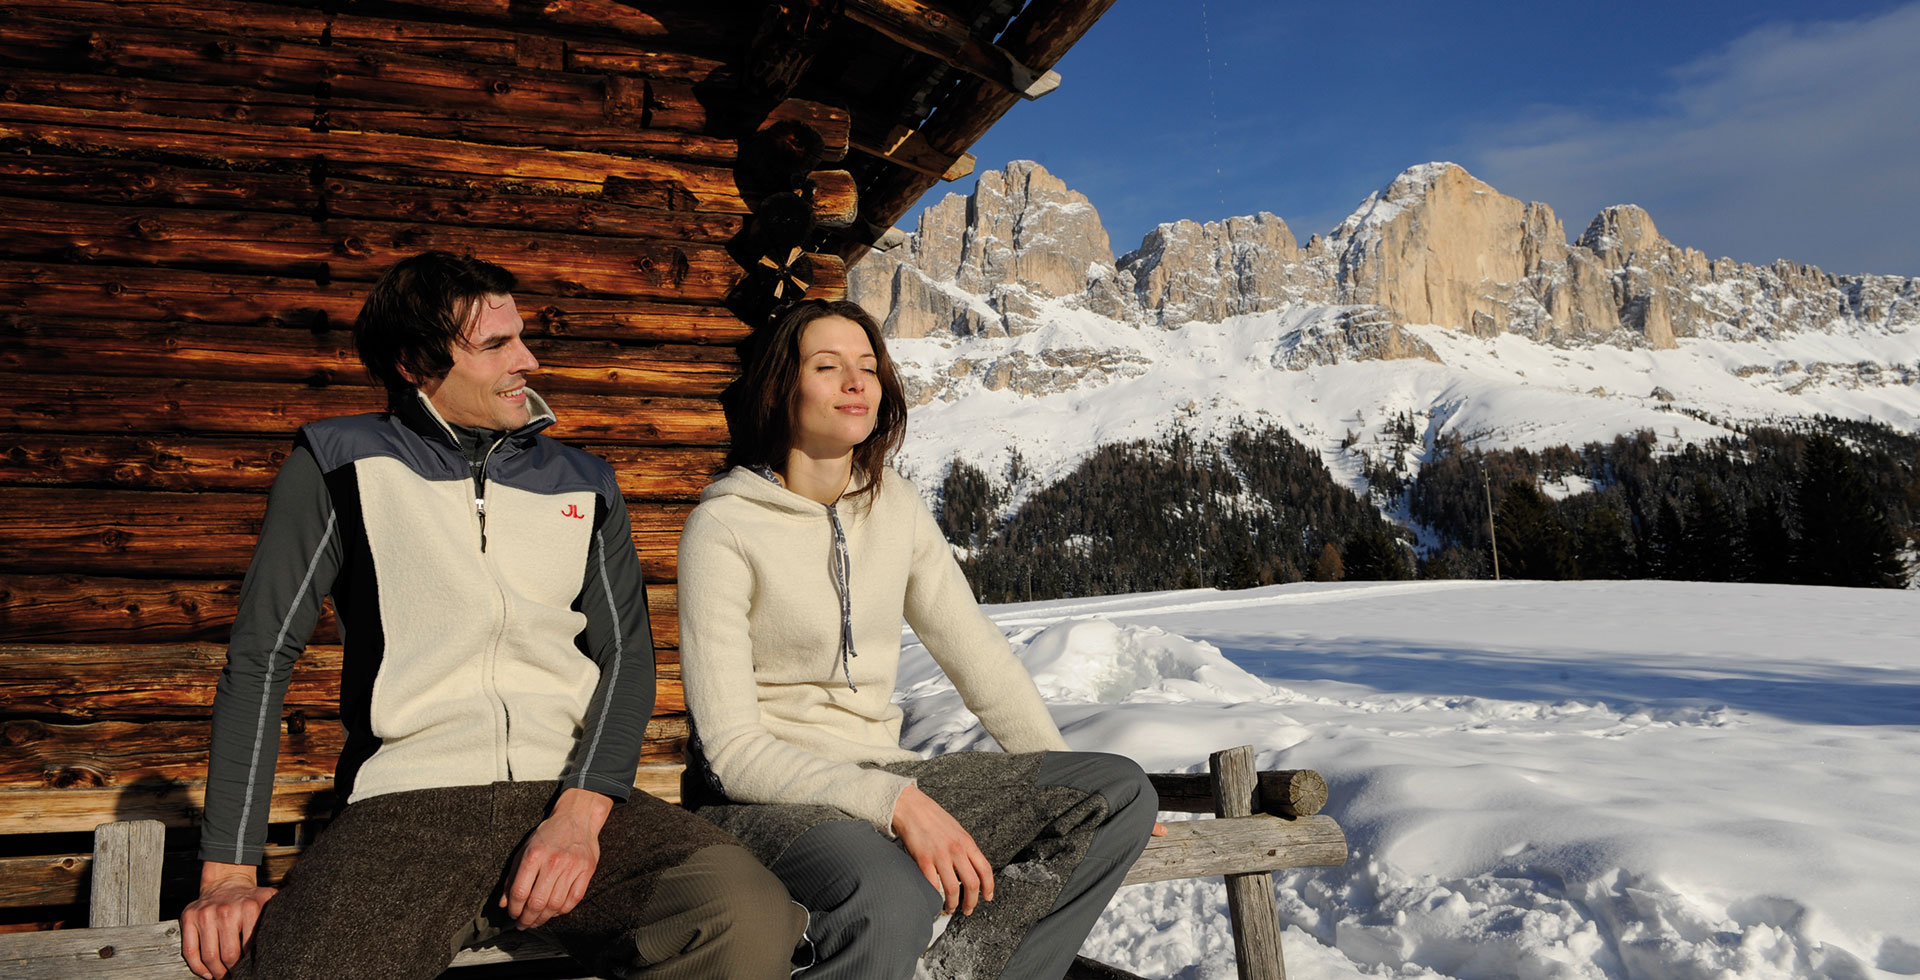 Sonnenparadies Carezza  King of the Dolomites